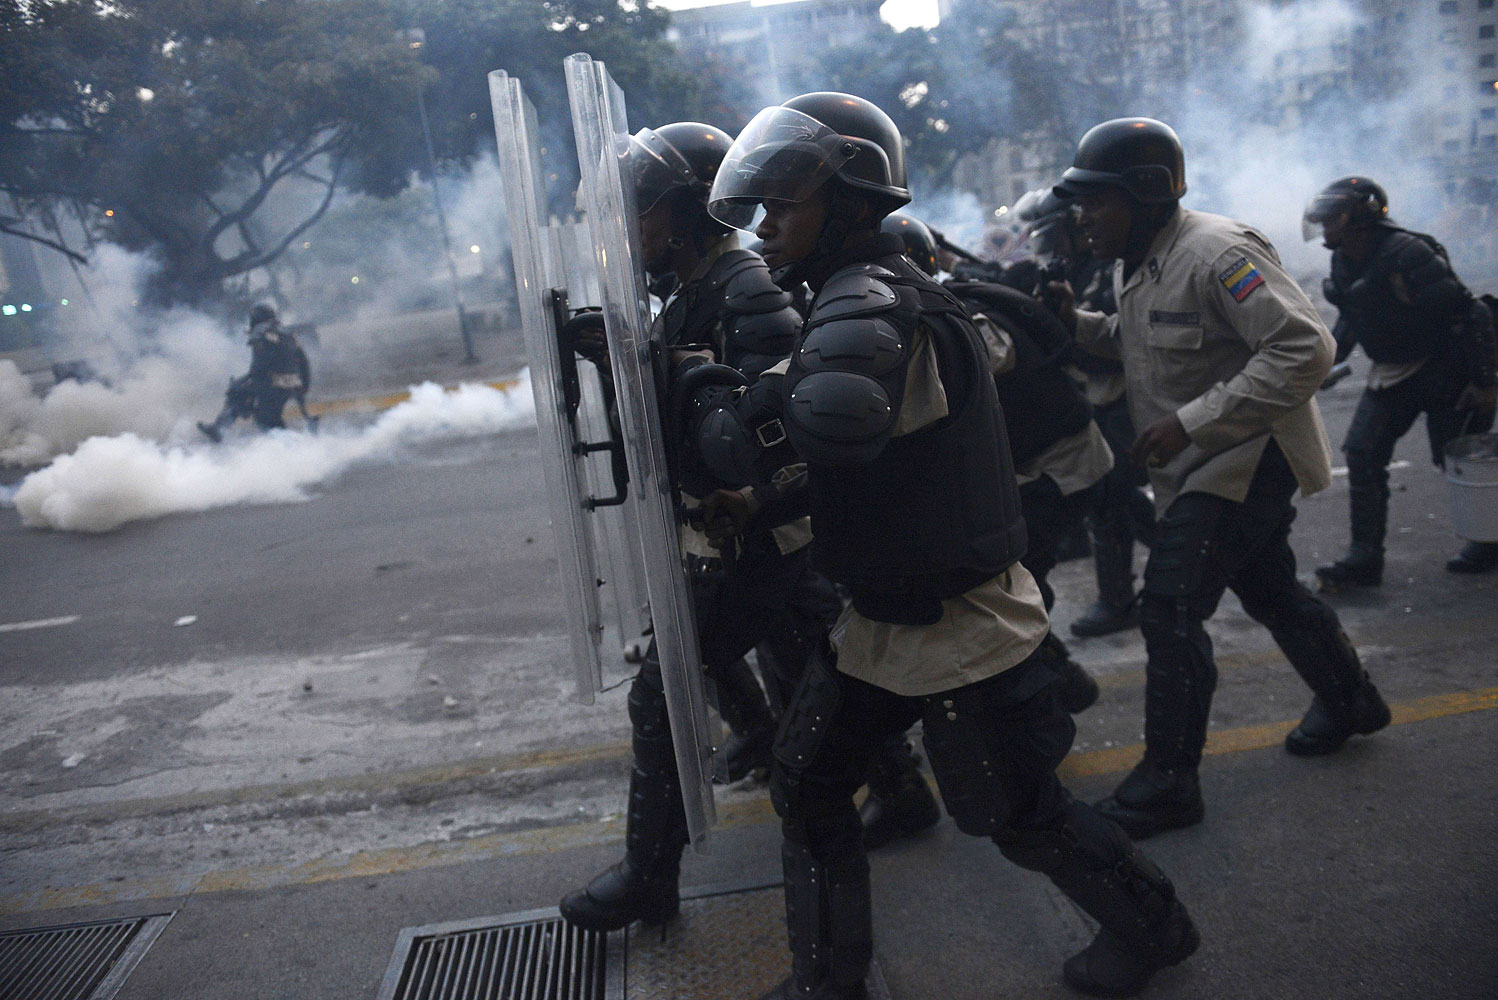 Riot police clash with opponents of Venezuelan President Nicolas Maduro during an anti-government protest in Caracas on Feb. 27, 2014.